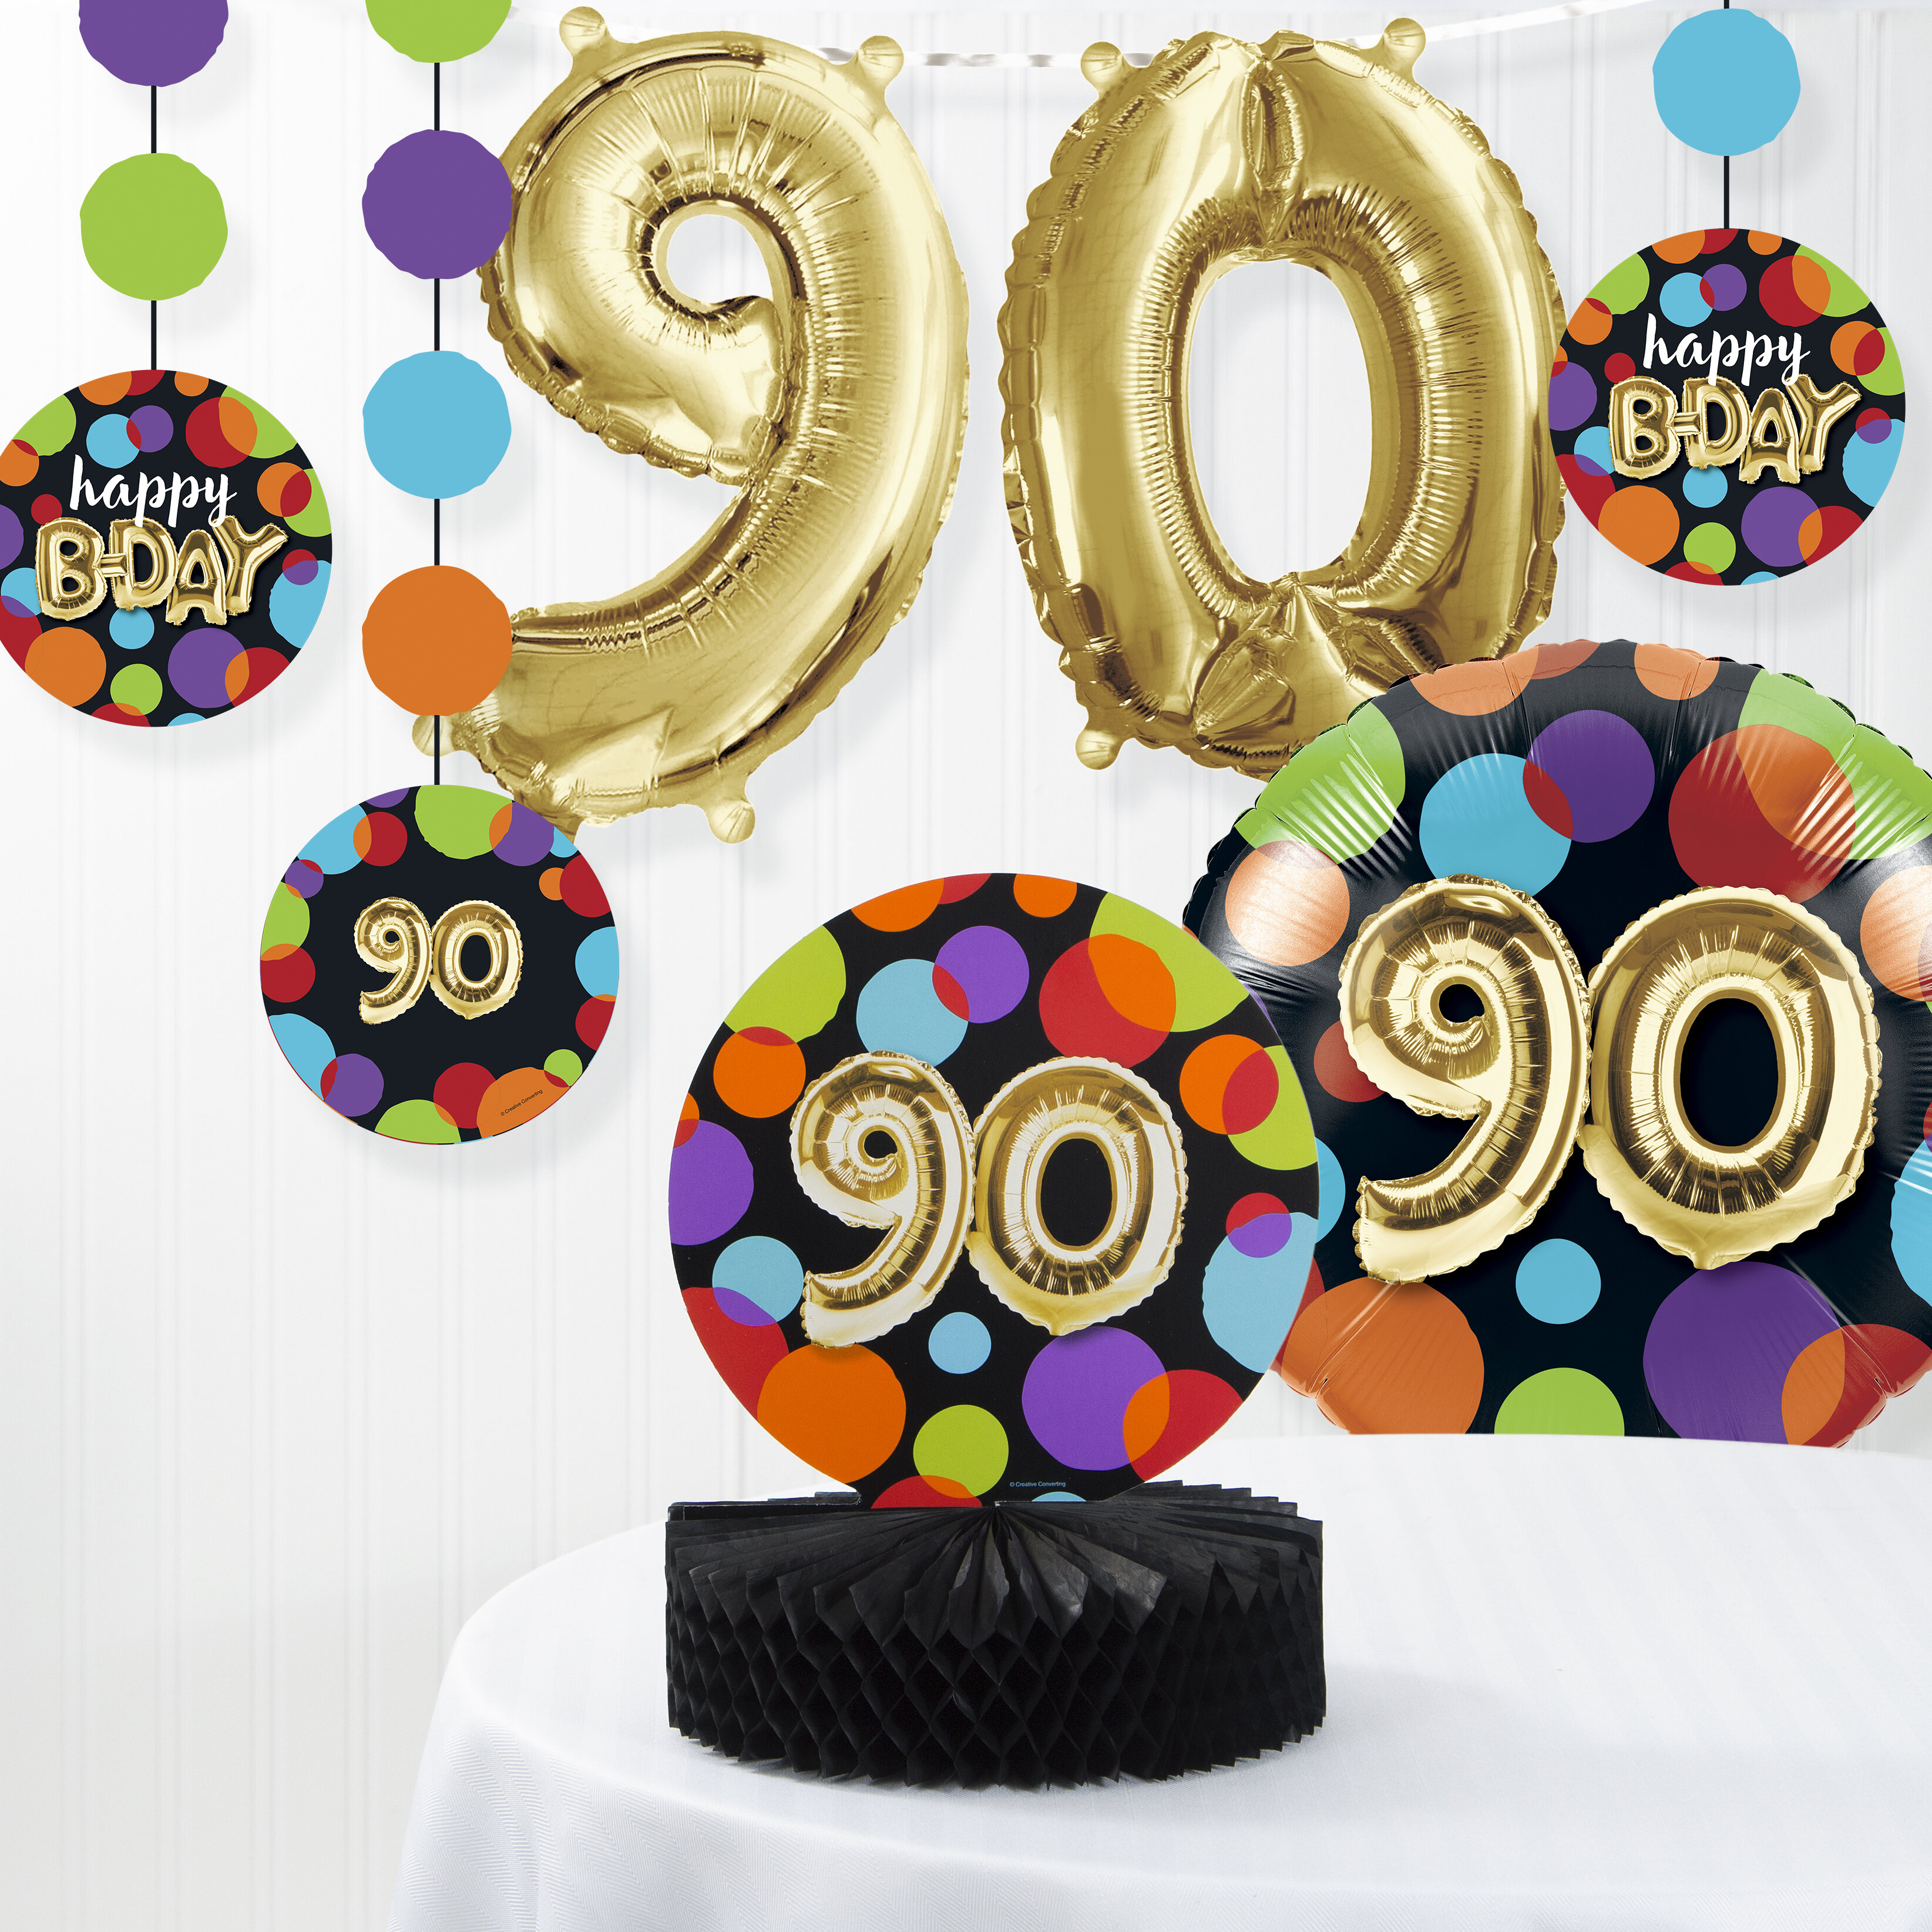 The Party Aisle Balloon 90th Birthday Decorations Kit